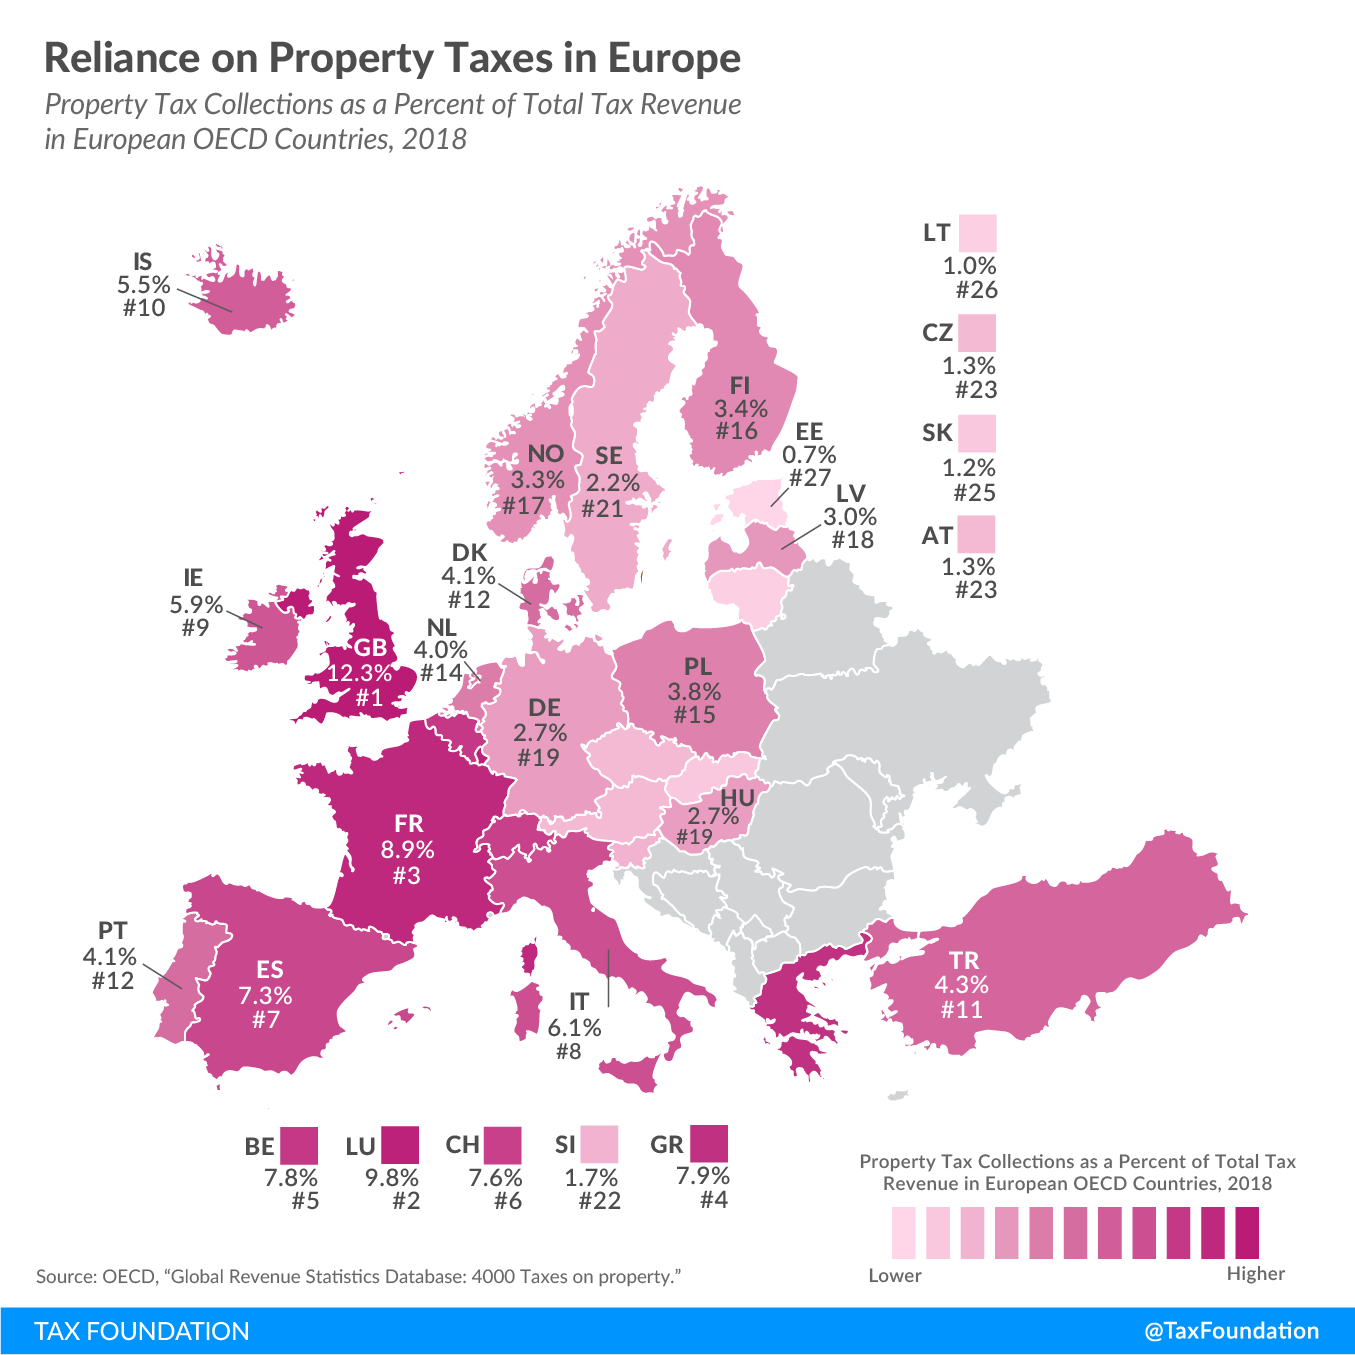 Property tax reliance in Europe 2020 reliance on property taxes in Europe, property tax collections as a percent of total tax revenue in European OECD countries